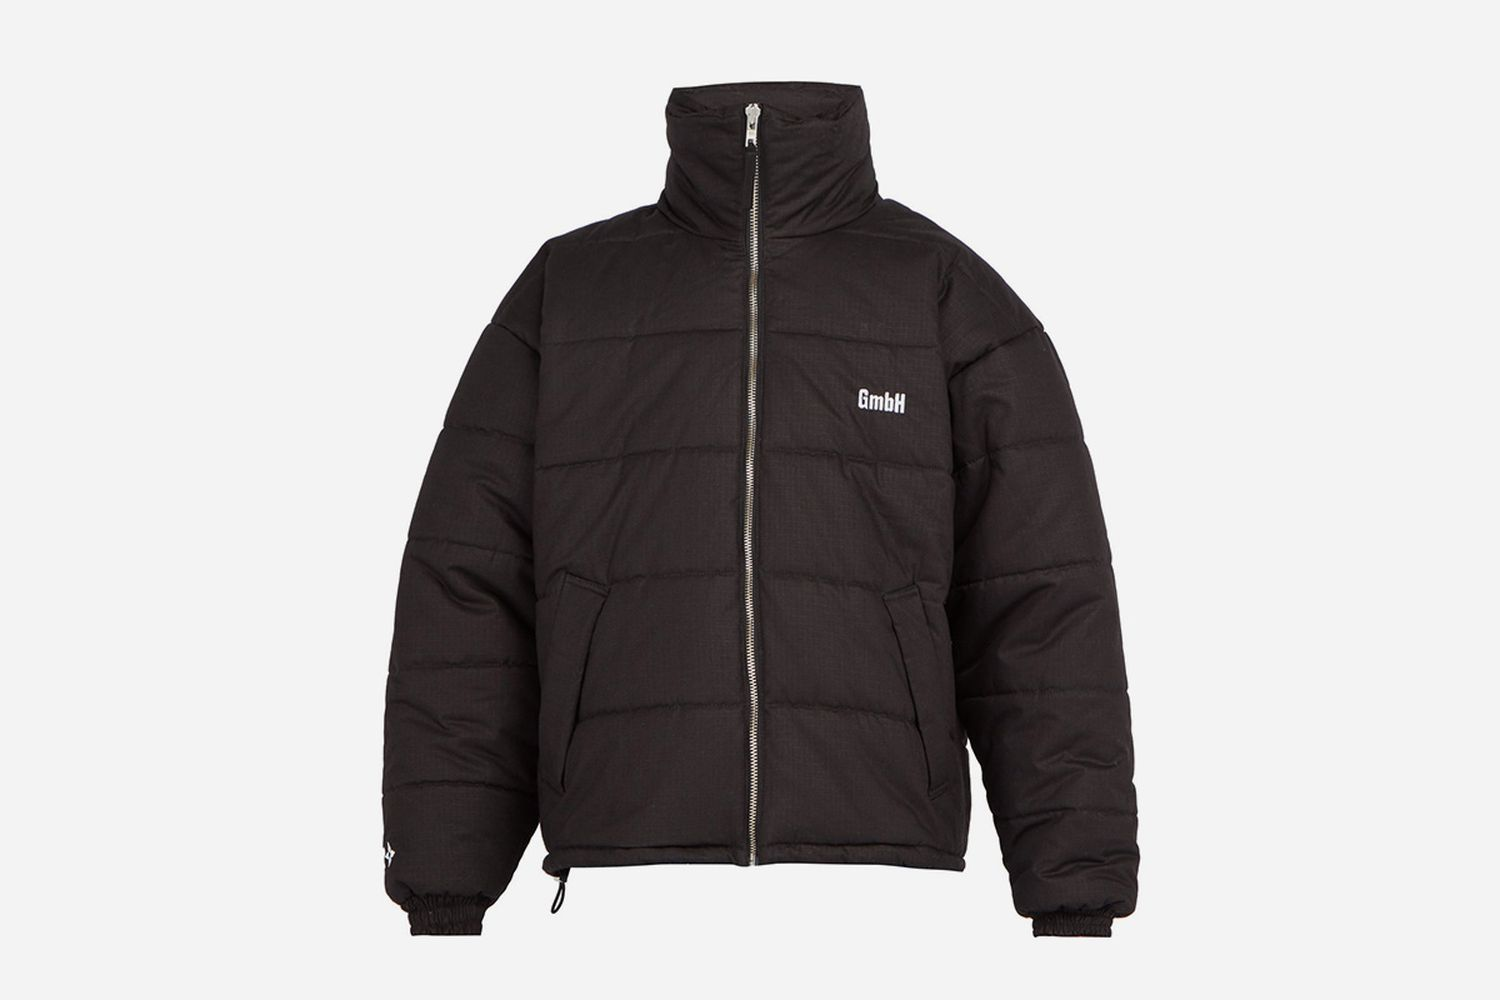 Debs logo-embroidered quilted jacket